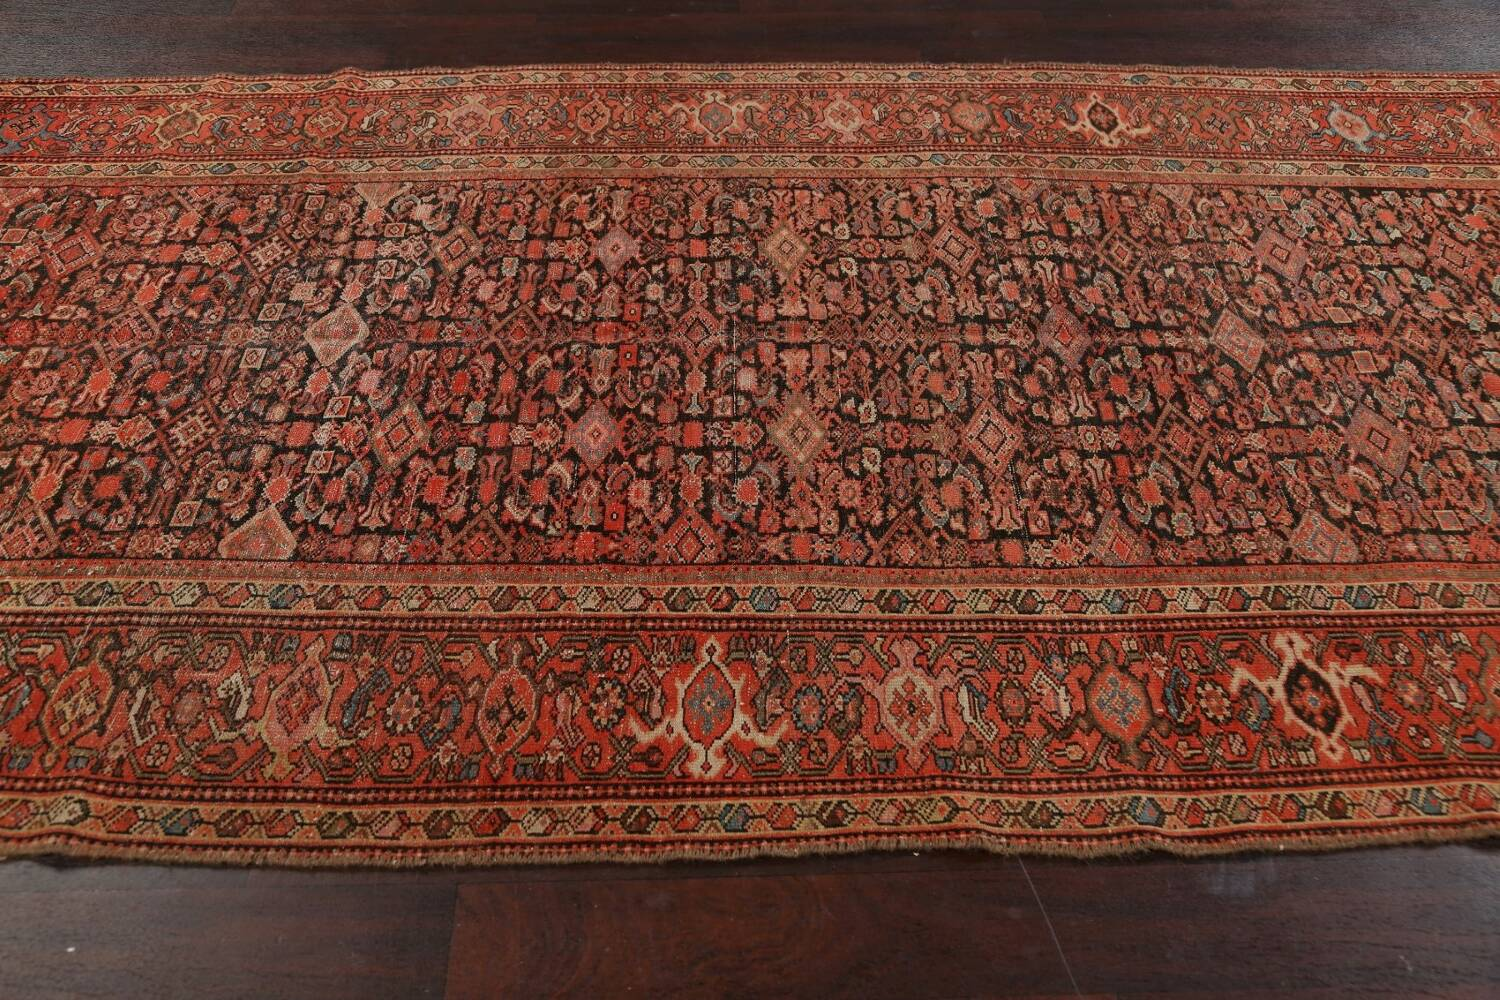 Pre-1900 Antique Vegetable Dye Malayer Persian Area Rug 5x10 image 13